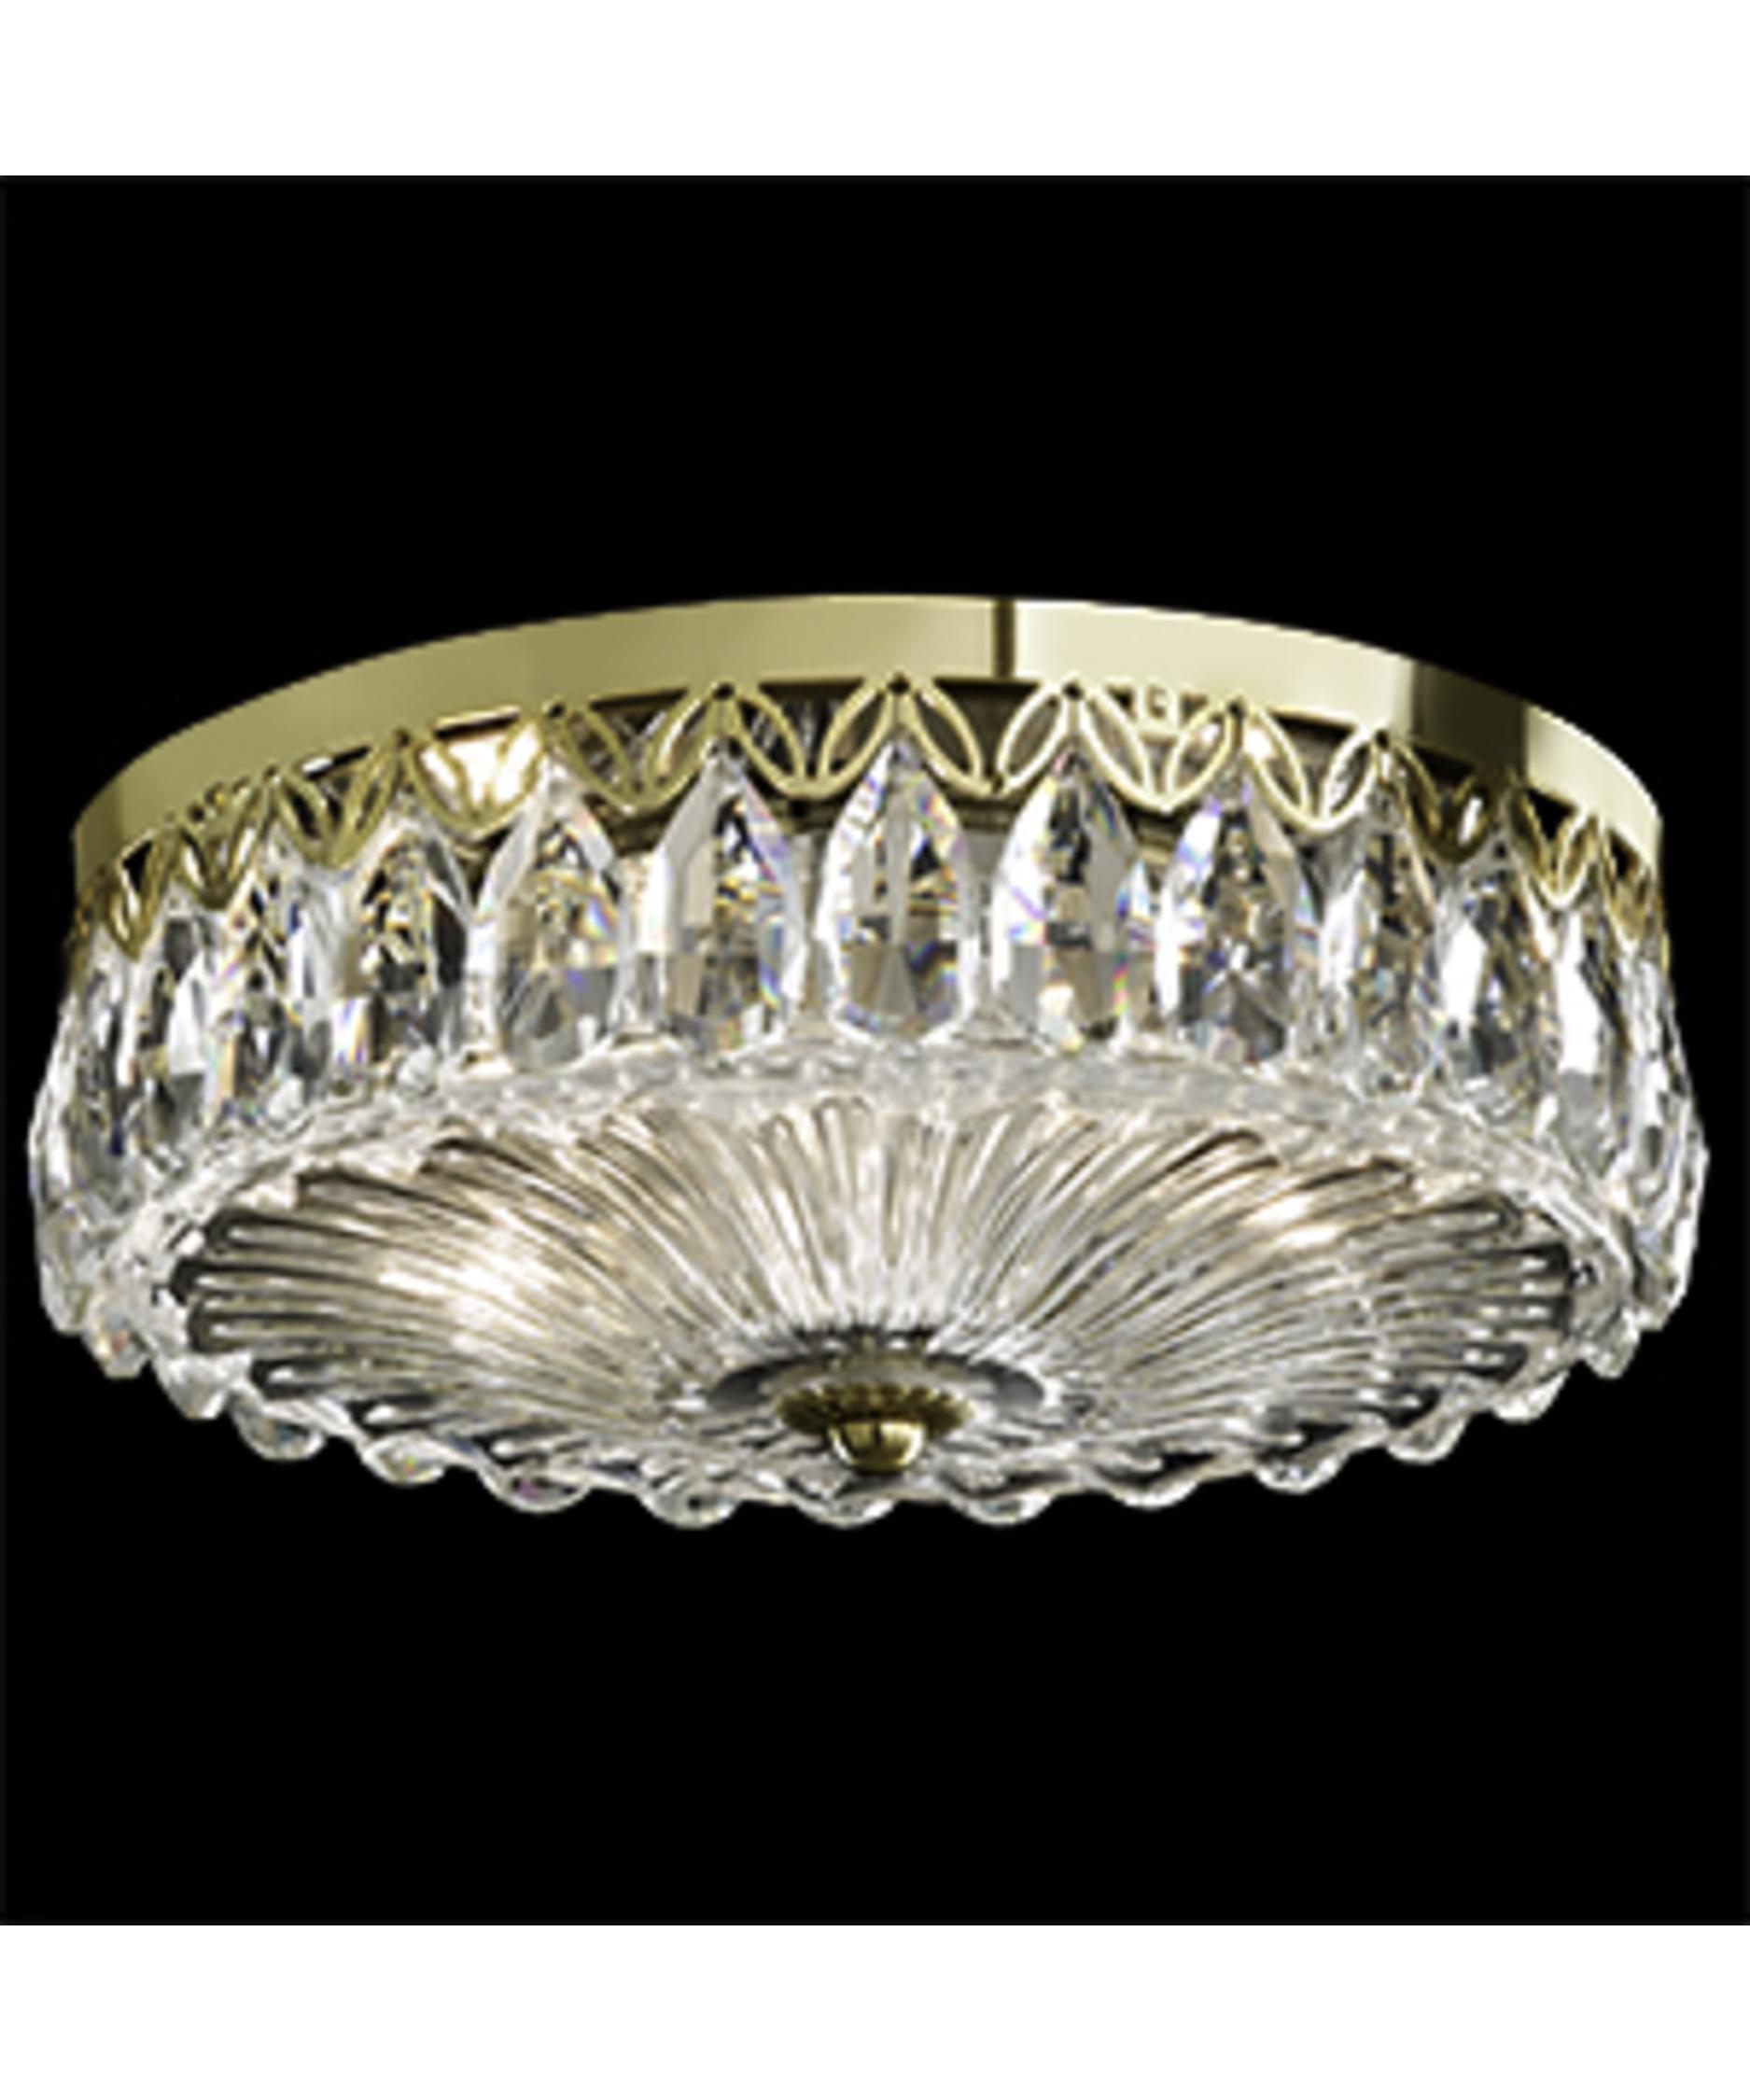 schonbek fl7067 fontana luce 12 inch wide flush mount capitol lighting - Schonbek Lighting